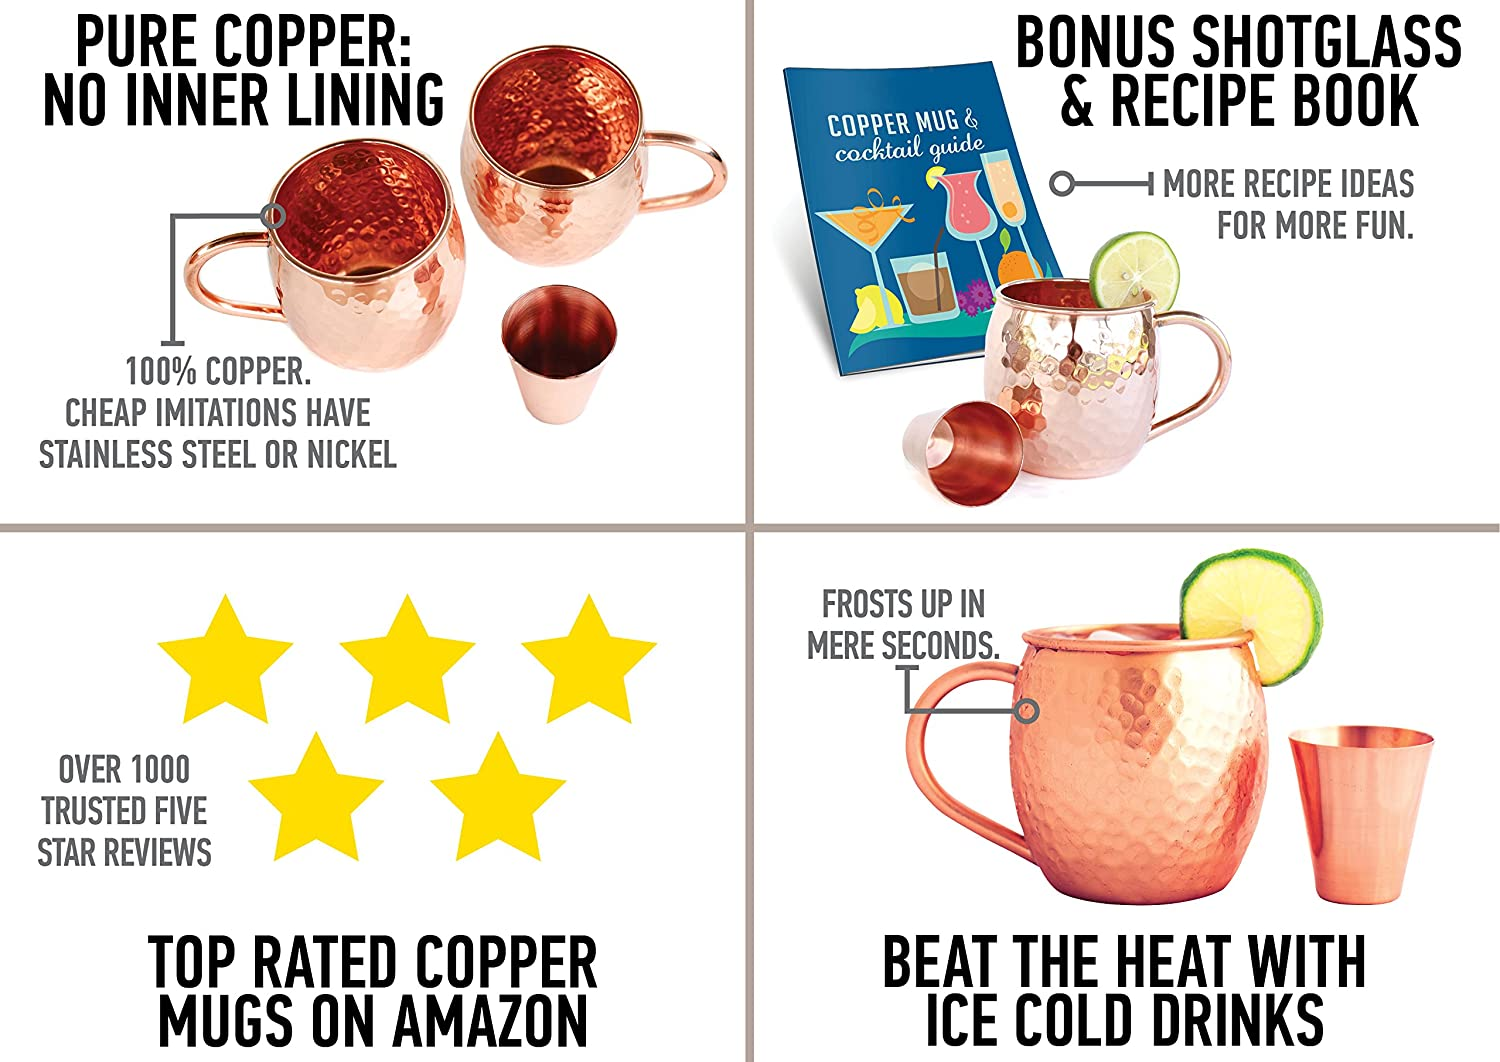 Amazon set of 2 moscow mule copper mugs with shot glass two amazon set of 2 moscow mule copper mugs with shot glass two 16 oz copper moscow mule mugs solid copper hammered mug copper cups for moscow mules fandeluxe Image collections